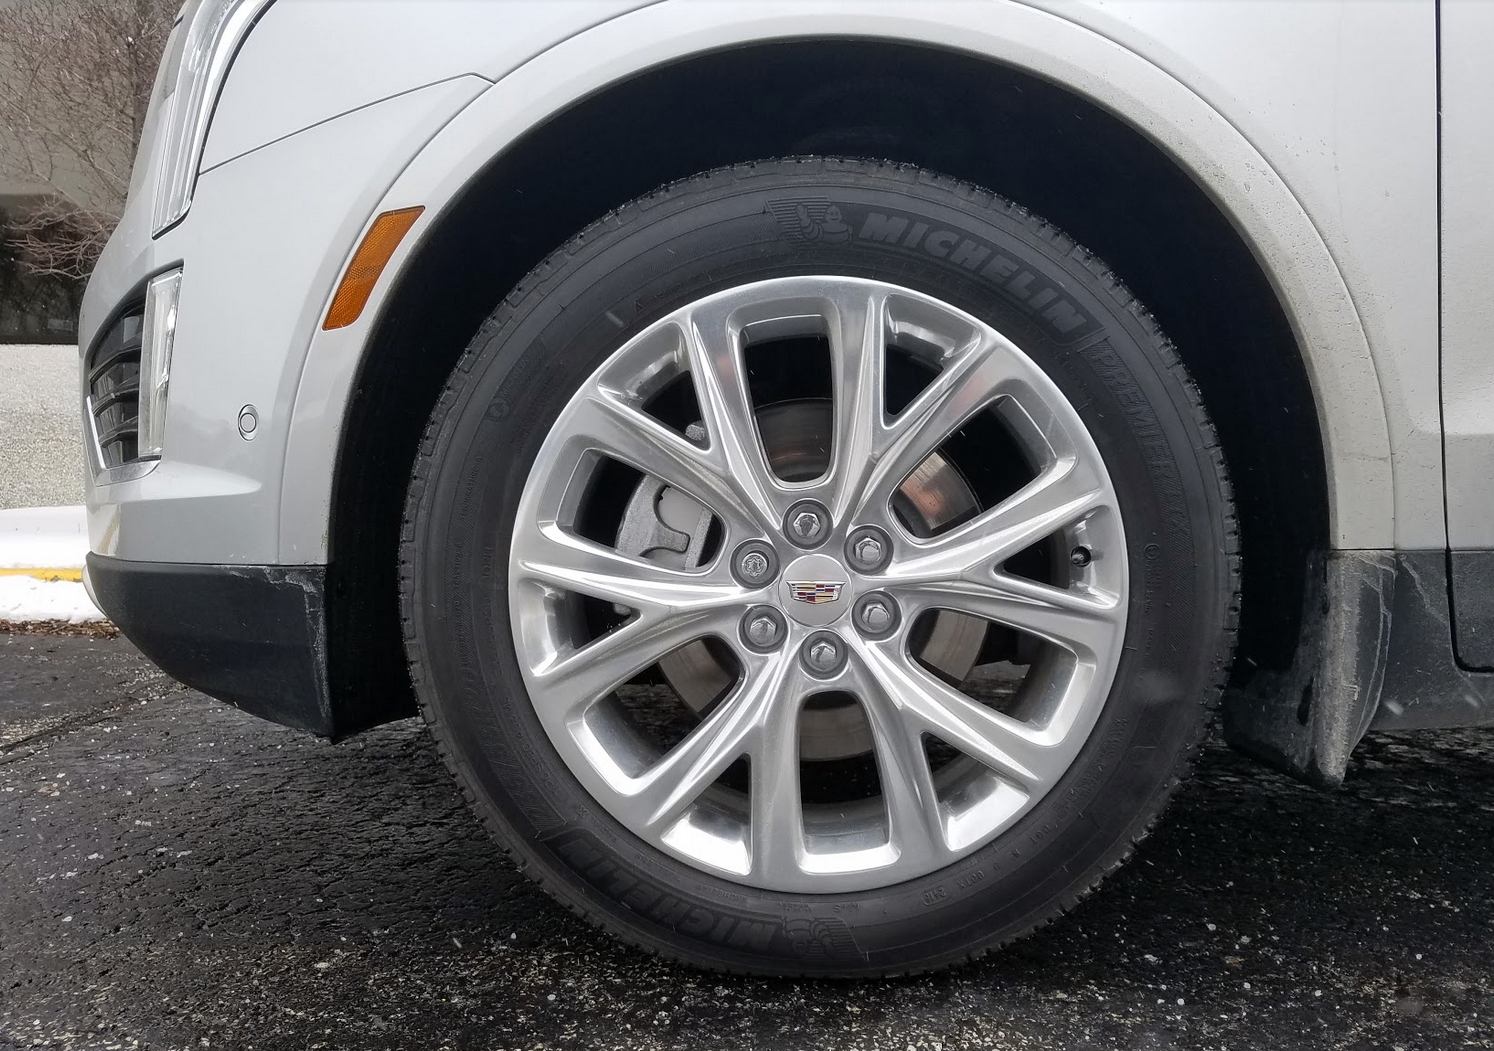 Slurry Polished Cadillac Wheels